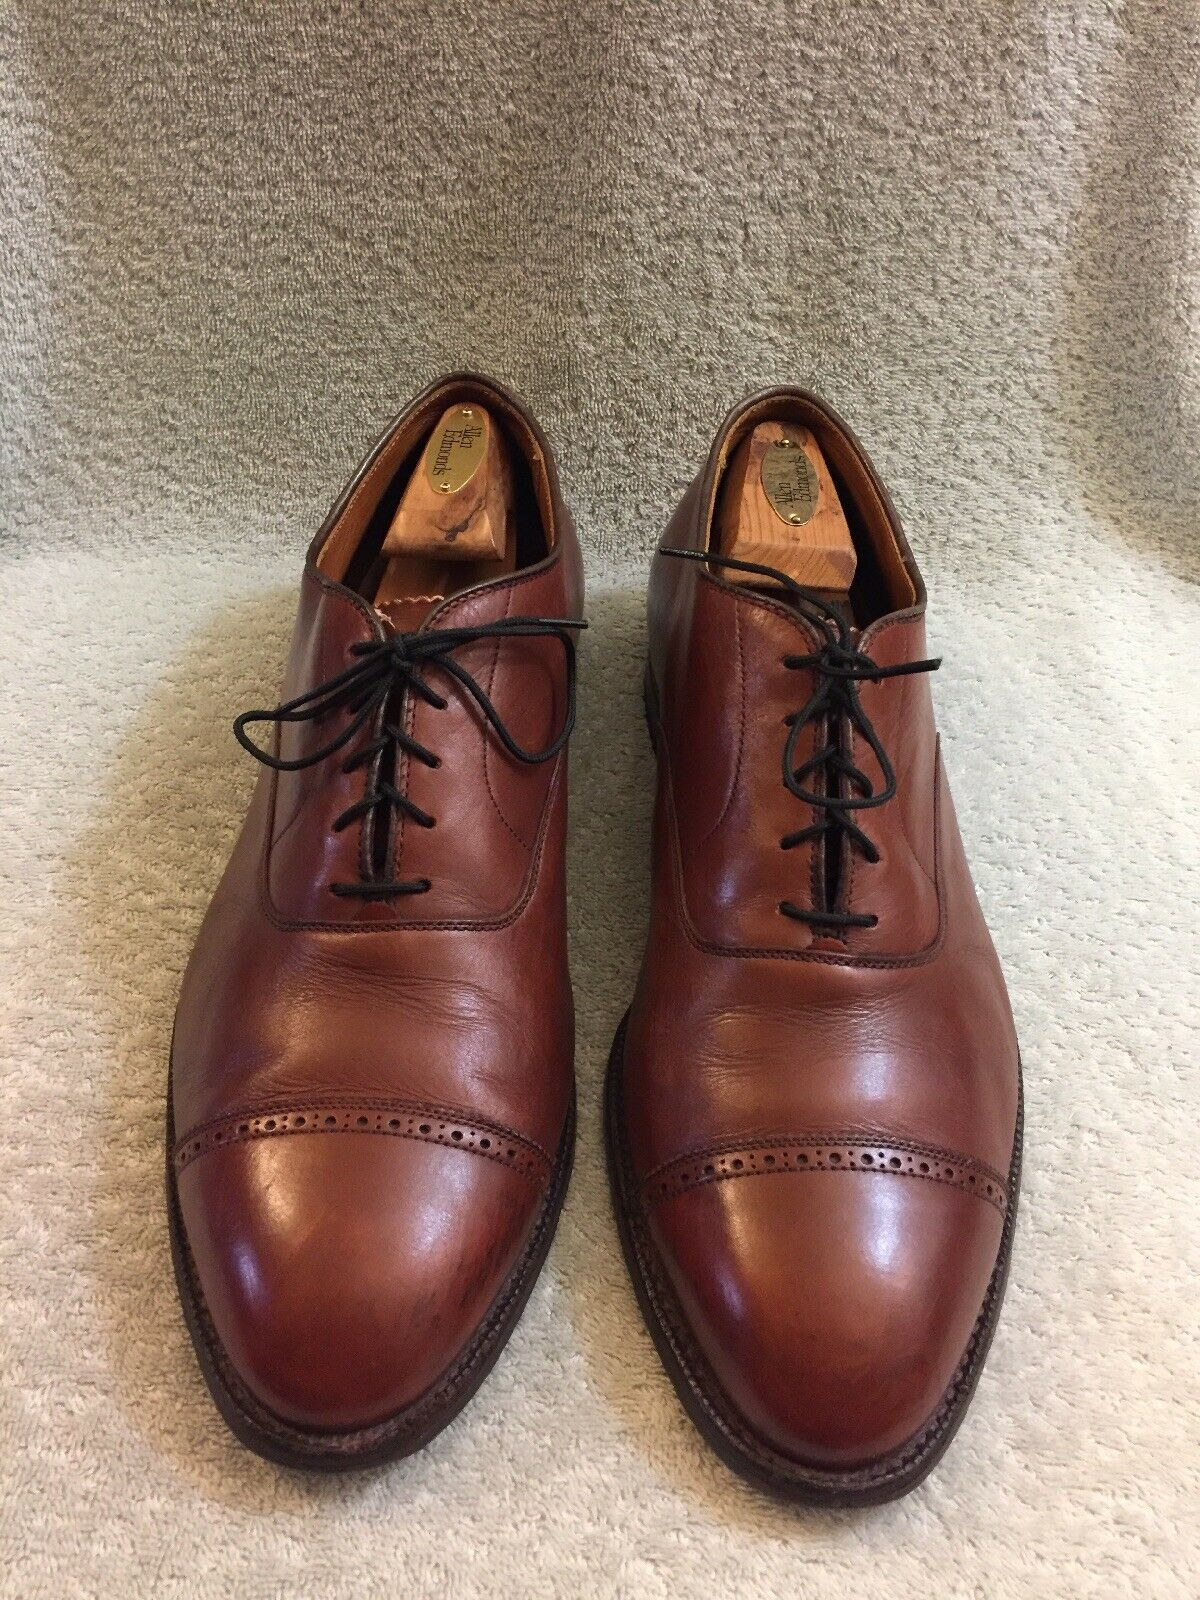 Alden 900 Oxford Cap Toe Chaussures Made in USA Homme Taille 12 C E